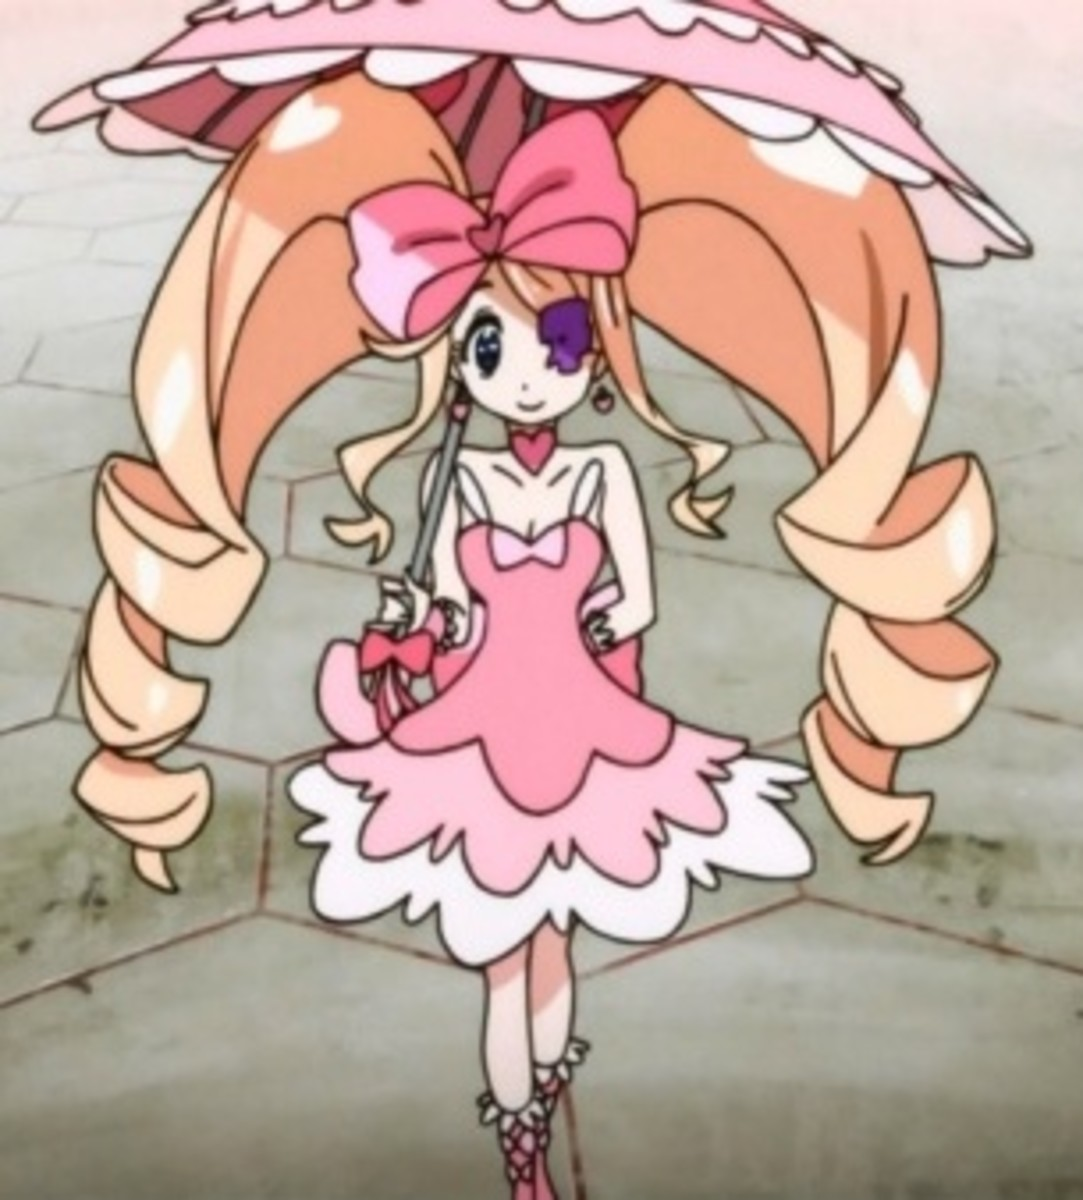 Nui (Kill La Kill) is a yangire, a character similar to a yandere, but without the motivation of a crush on someone.